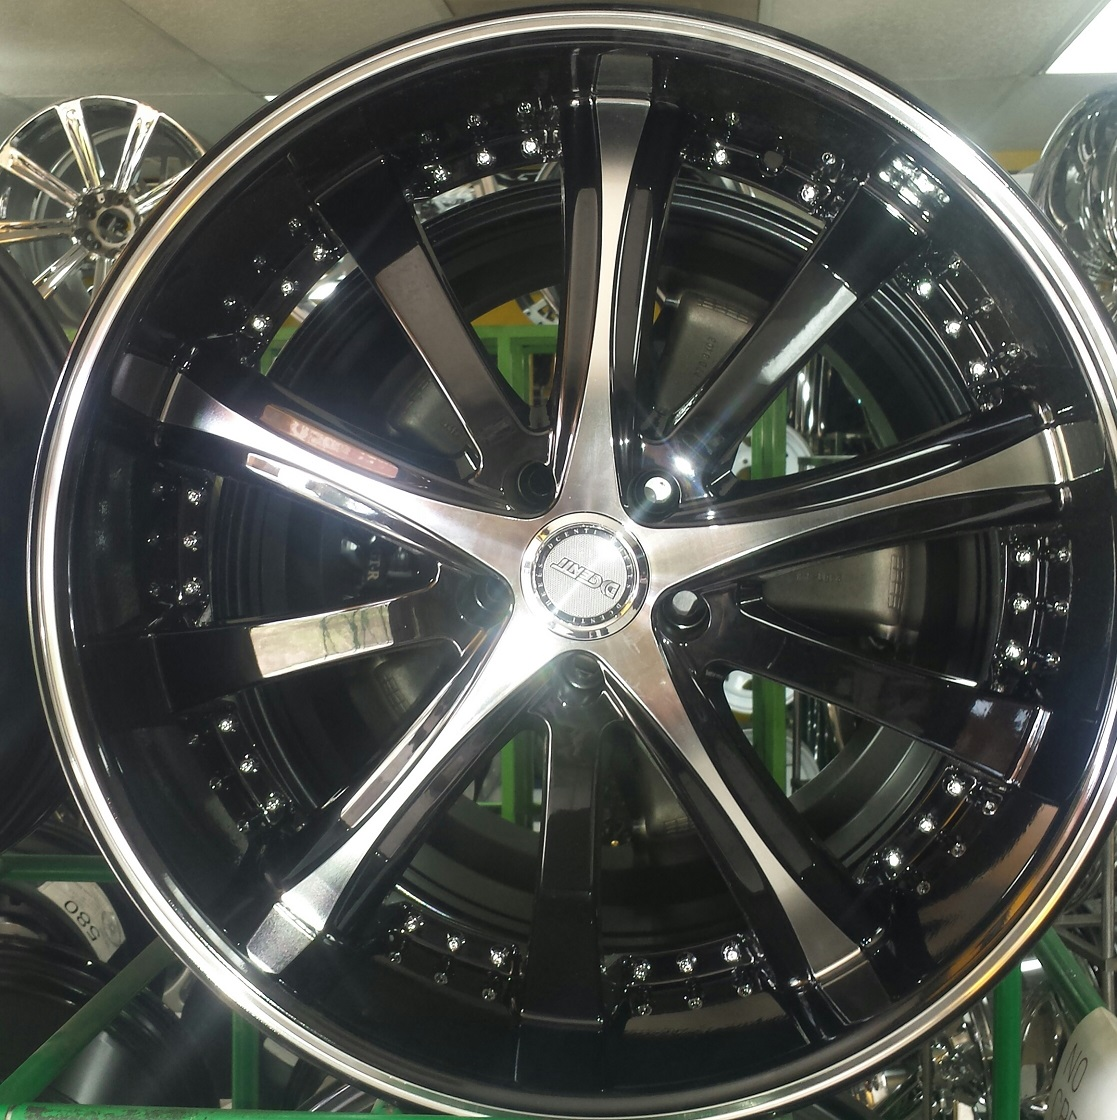 Wheels on special brand name Dcenti black with machine finish 22x9 offset13 bolt pattern 5x115 Fi